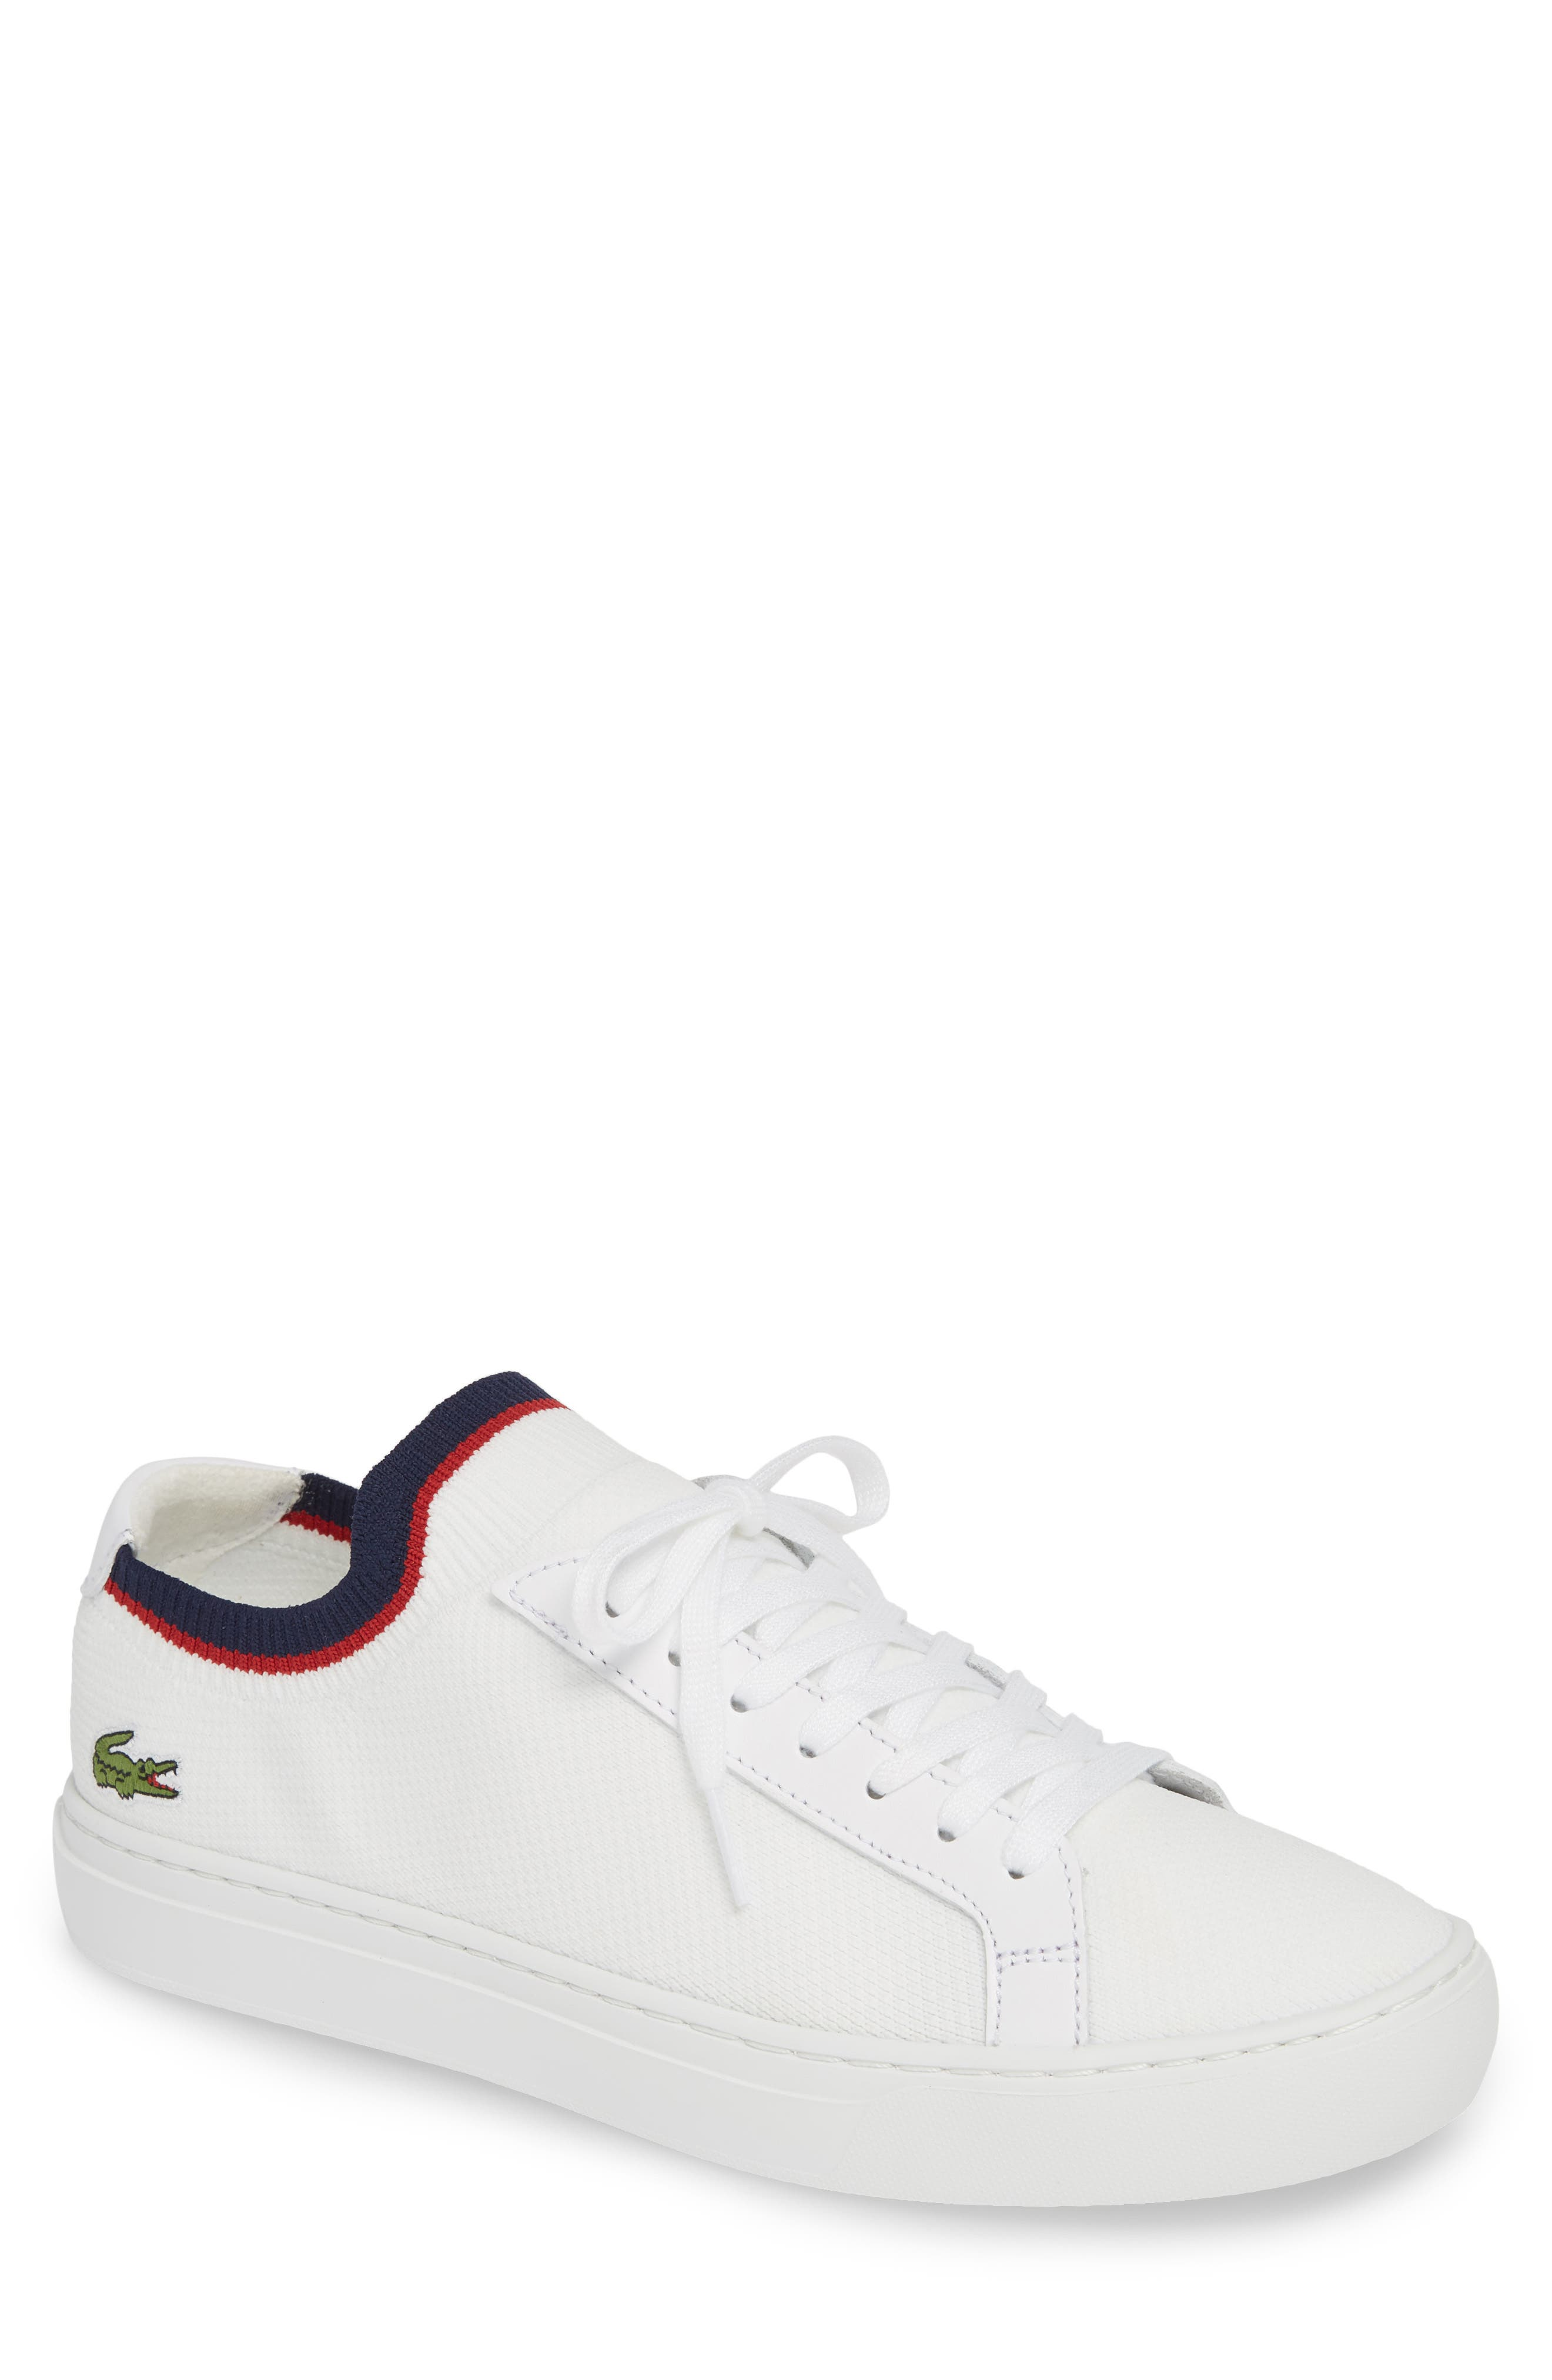 LACOSTE Piqué Knit Sneaker, Main, color, WHITE/ NAVY/ RED